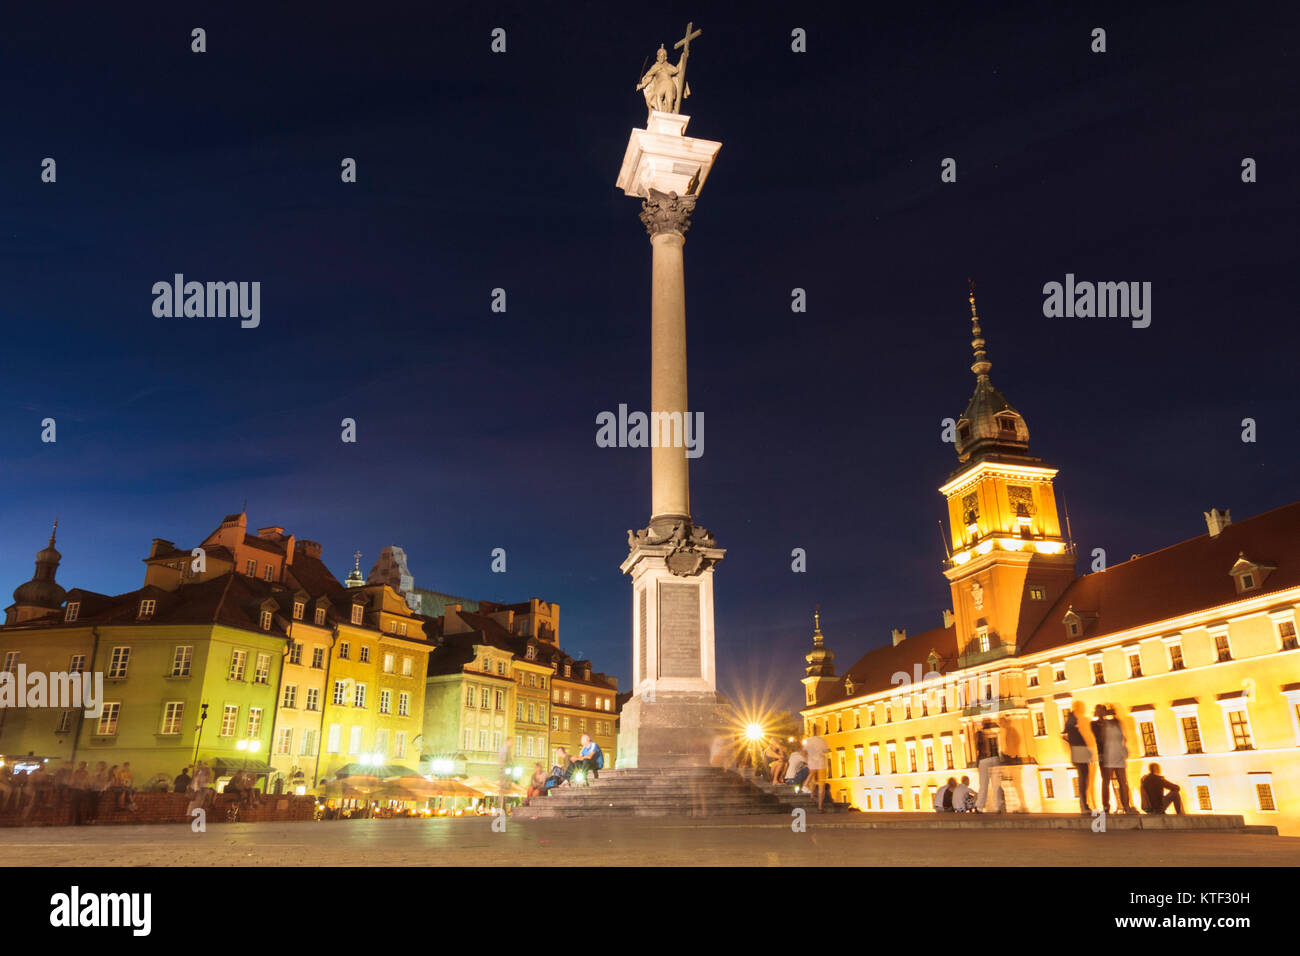 Castle square illuminated at dusk. Warsaw, Poland - Stock Image